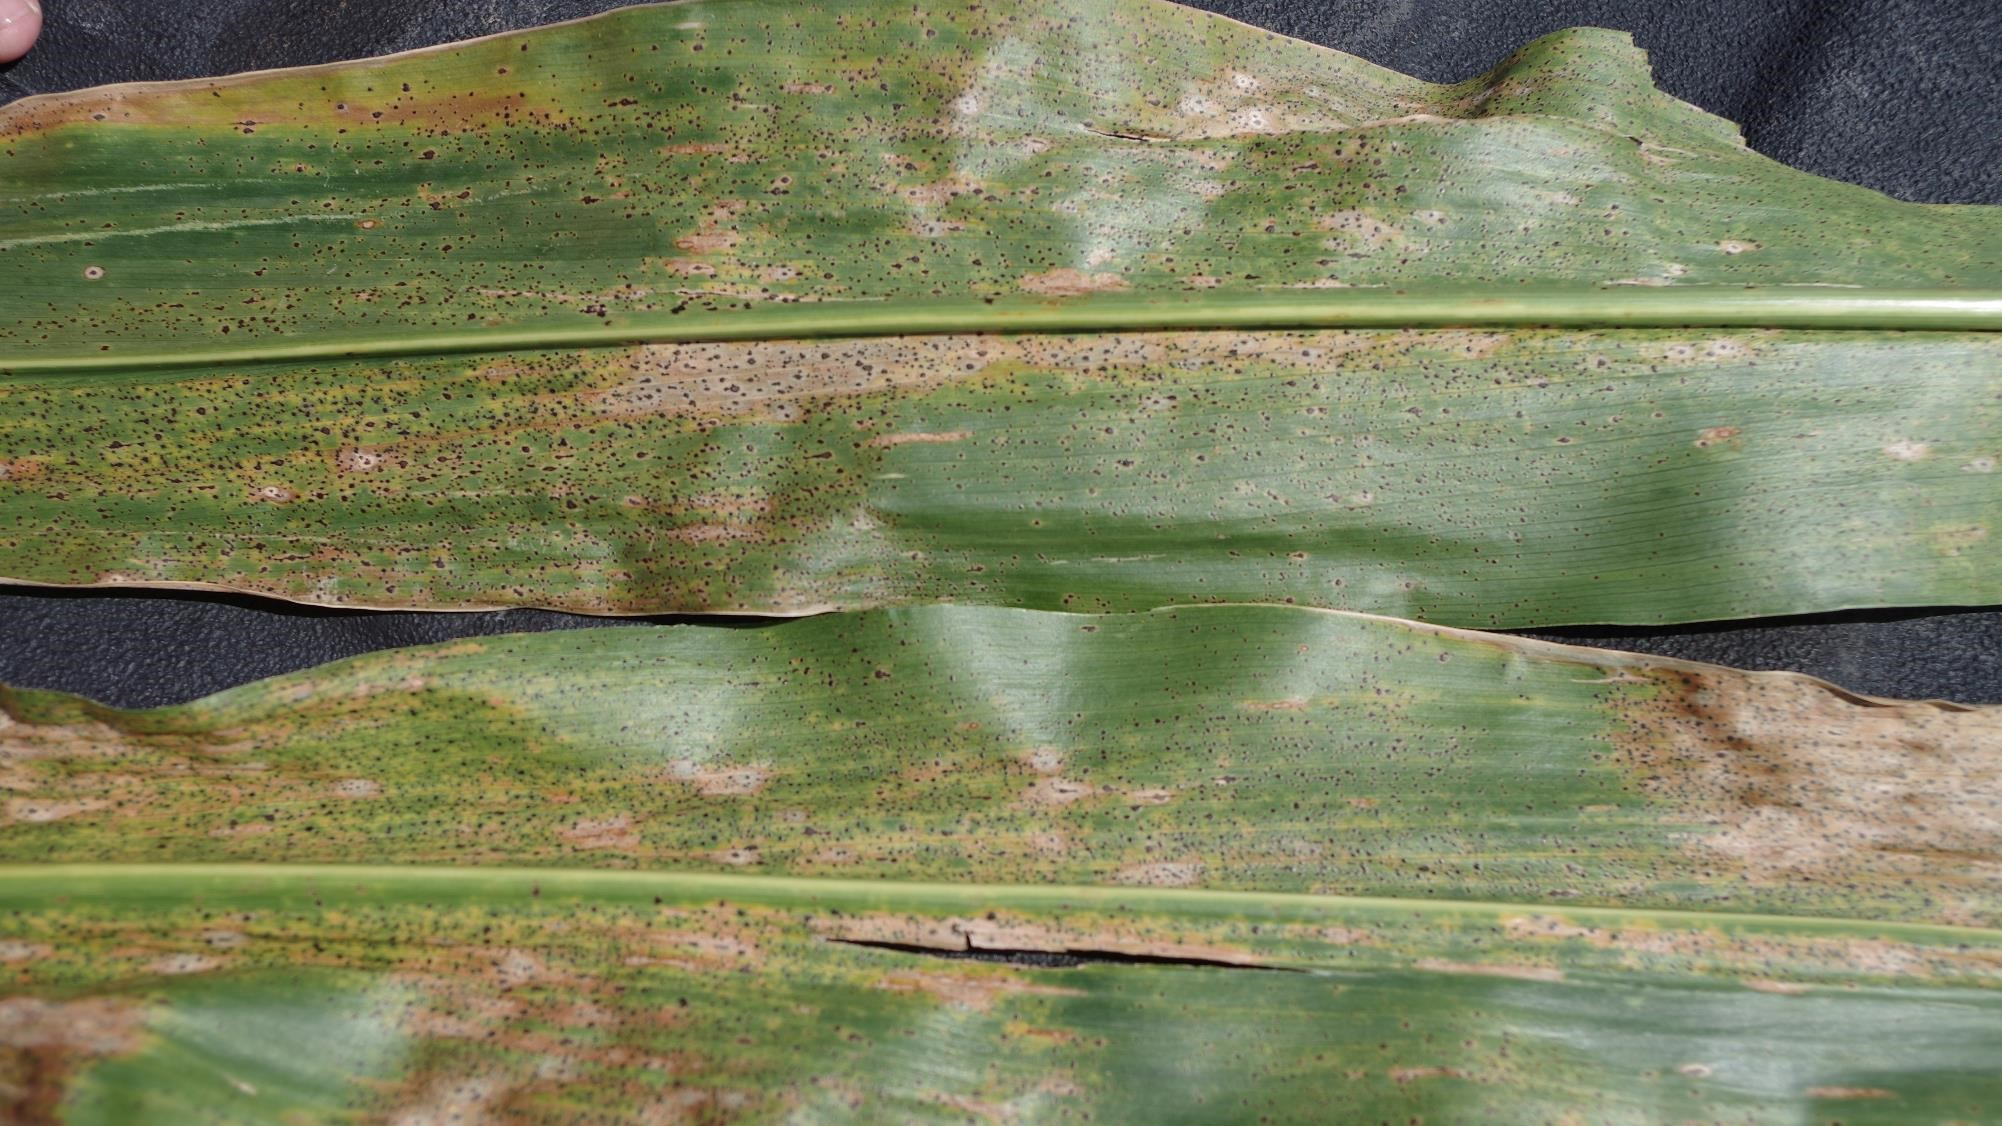 This agronomic image shows tar spot.